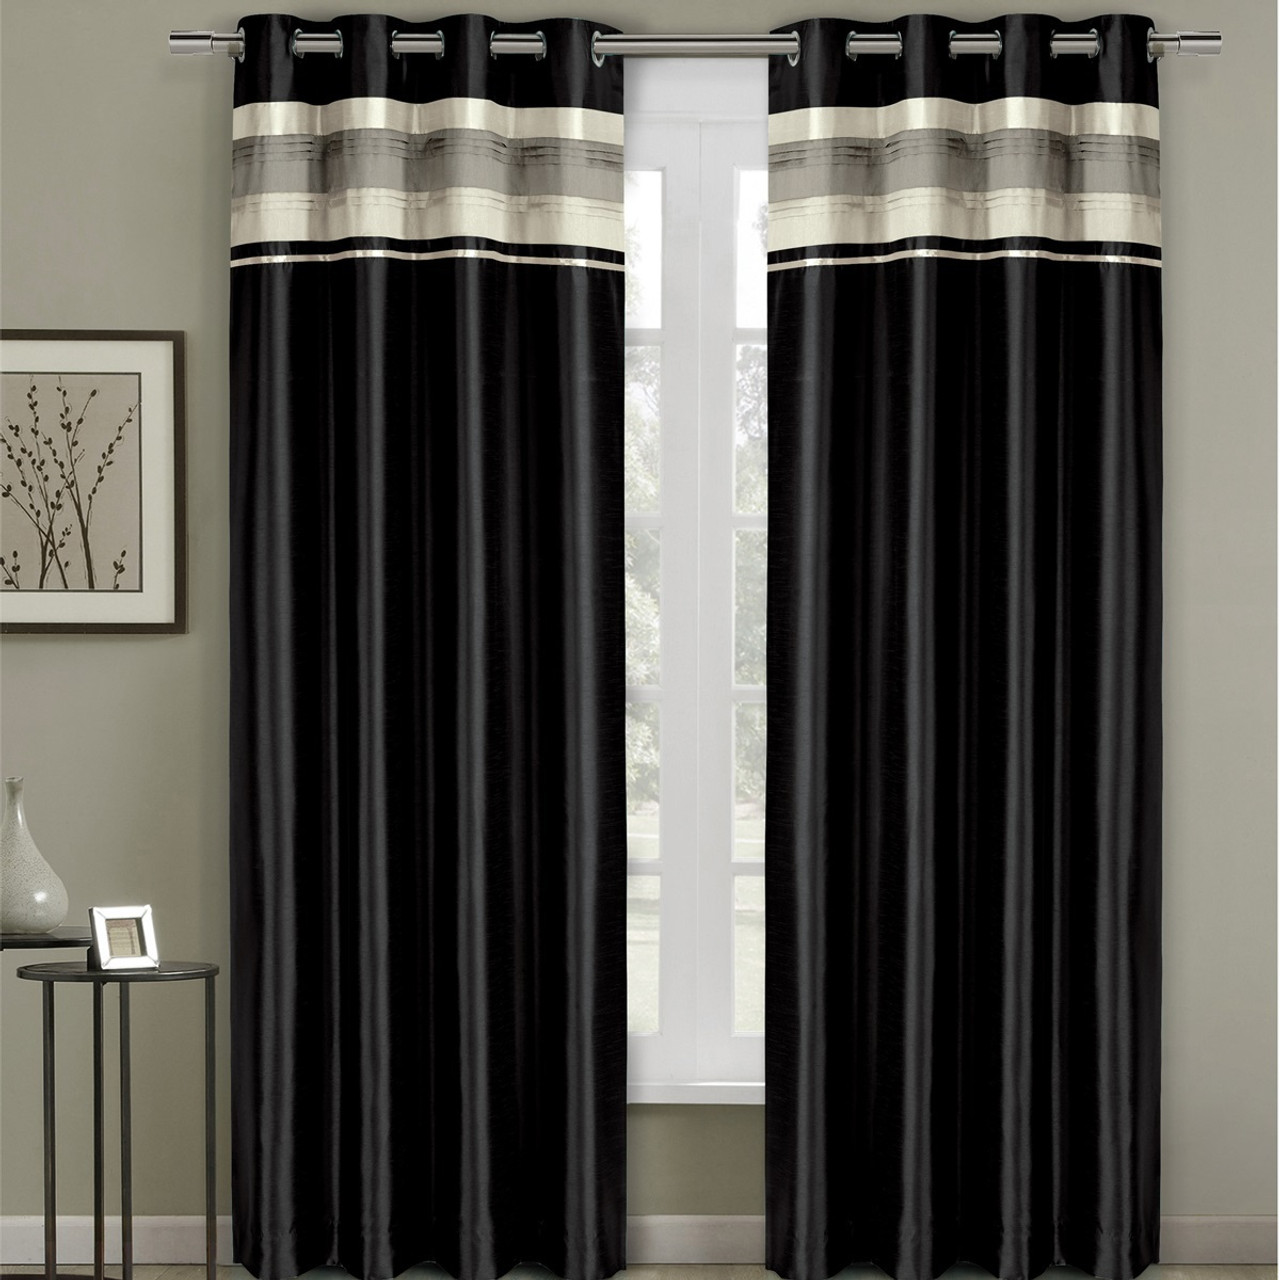 Milan Lined Blackout Curtains With Grommets Single Panel Black